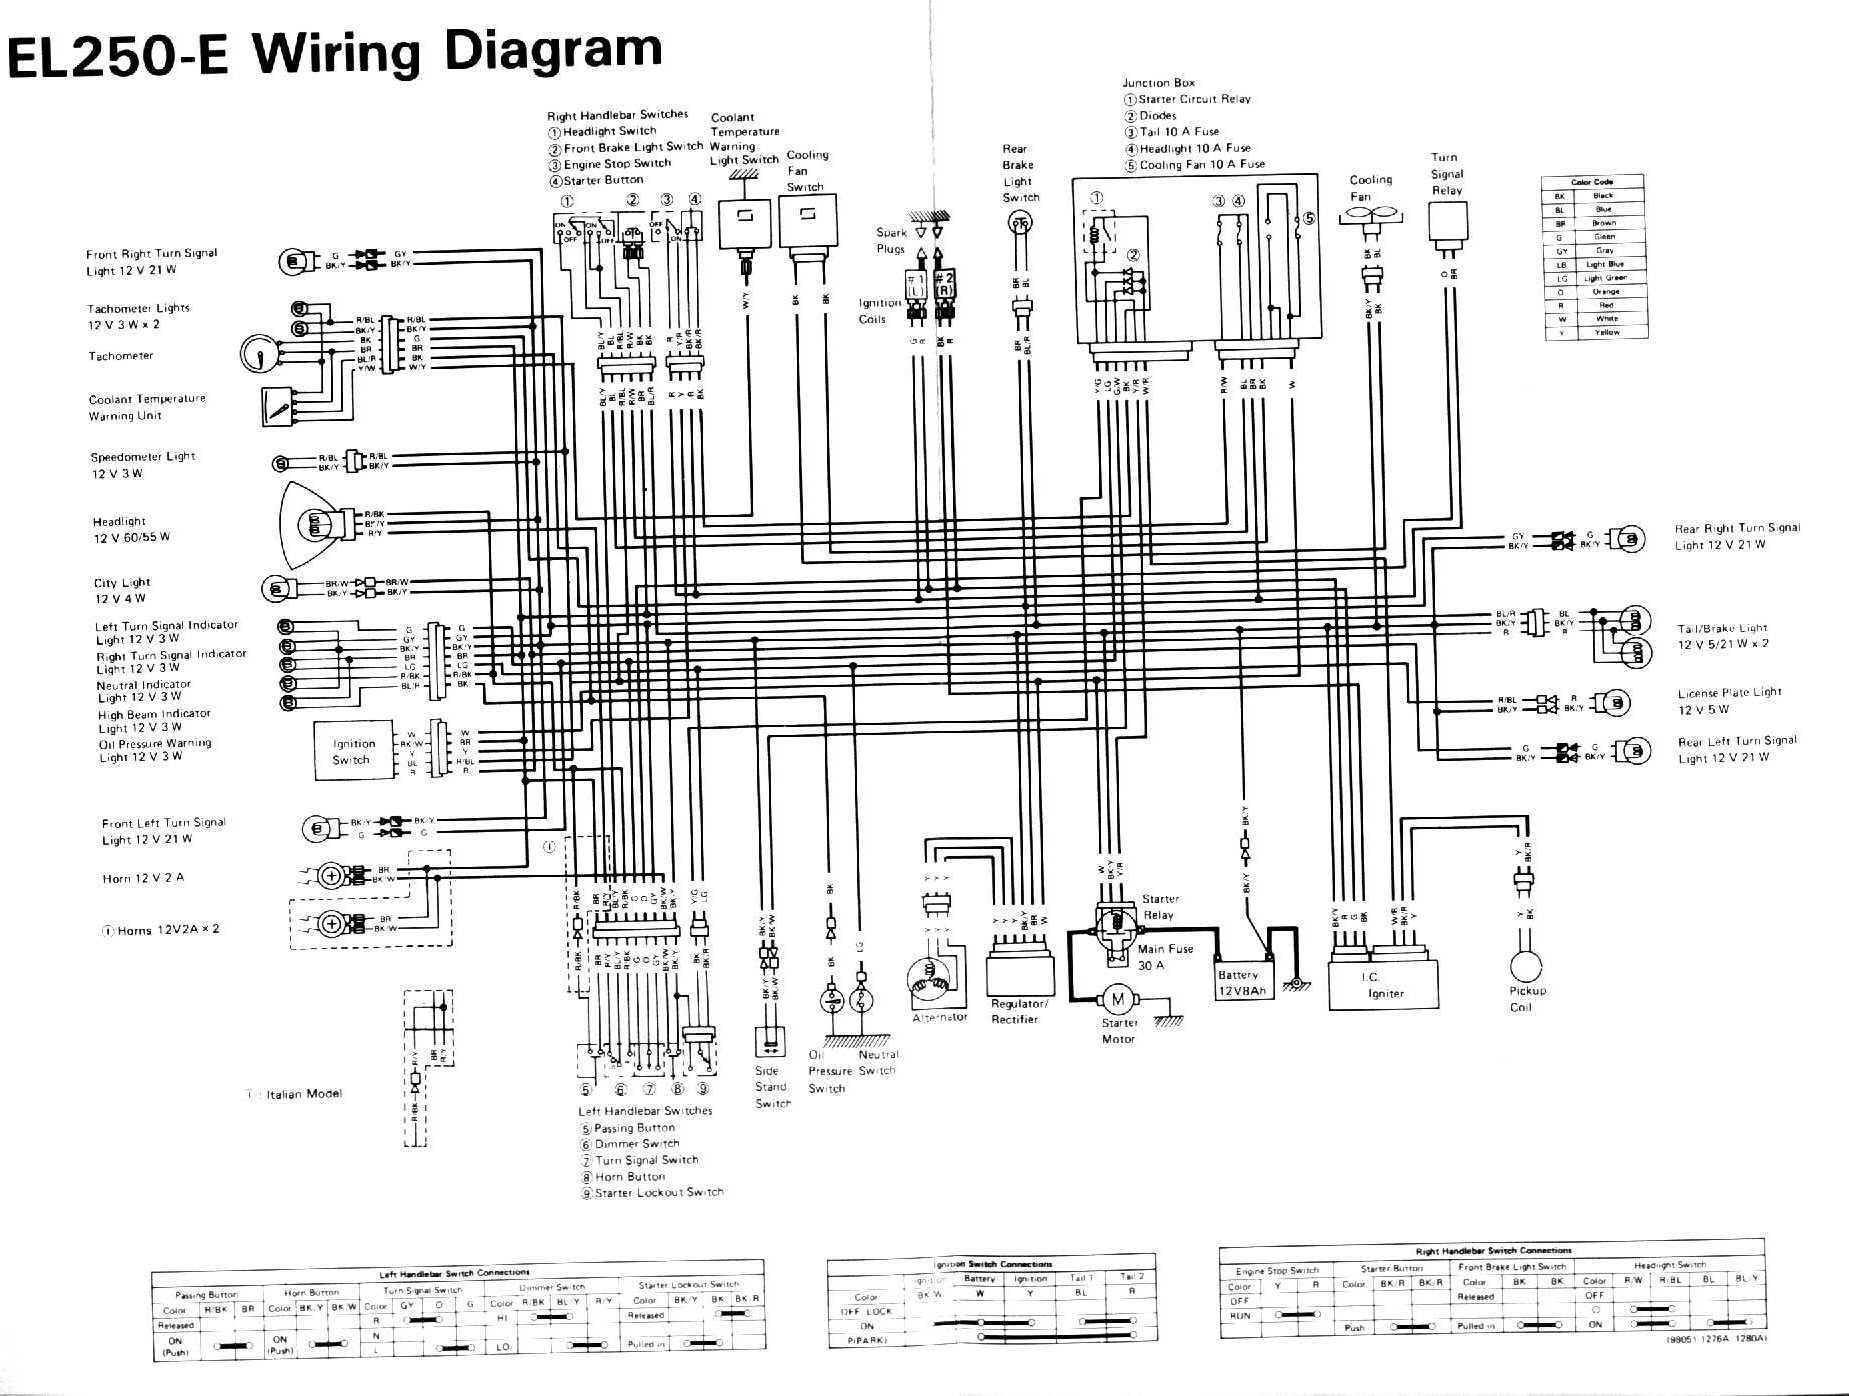 kawasaki ninja 250 ignition wiring diagram  kawasaki  free 2008 kawasaki zx14 wiring diagram 2008 zx14 wiring diagram